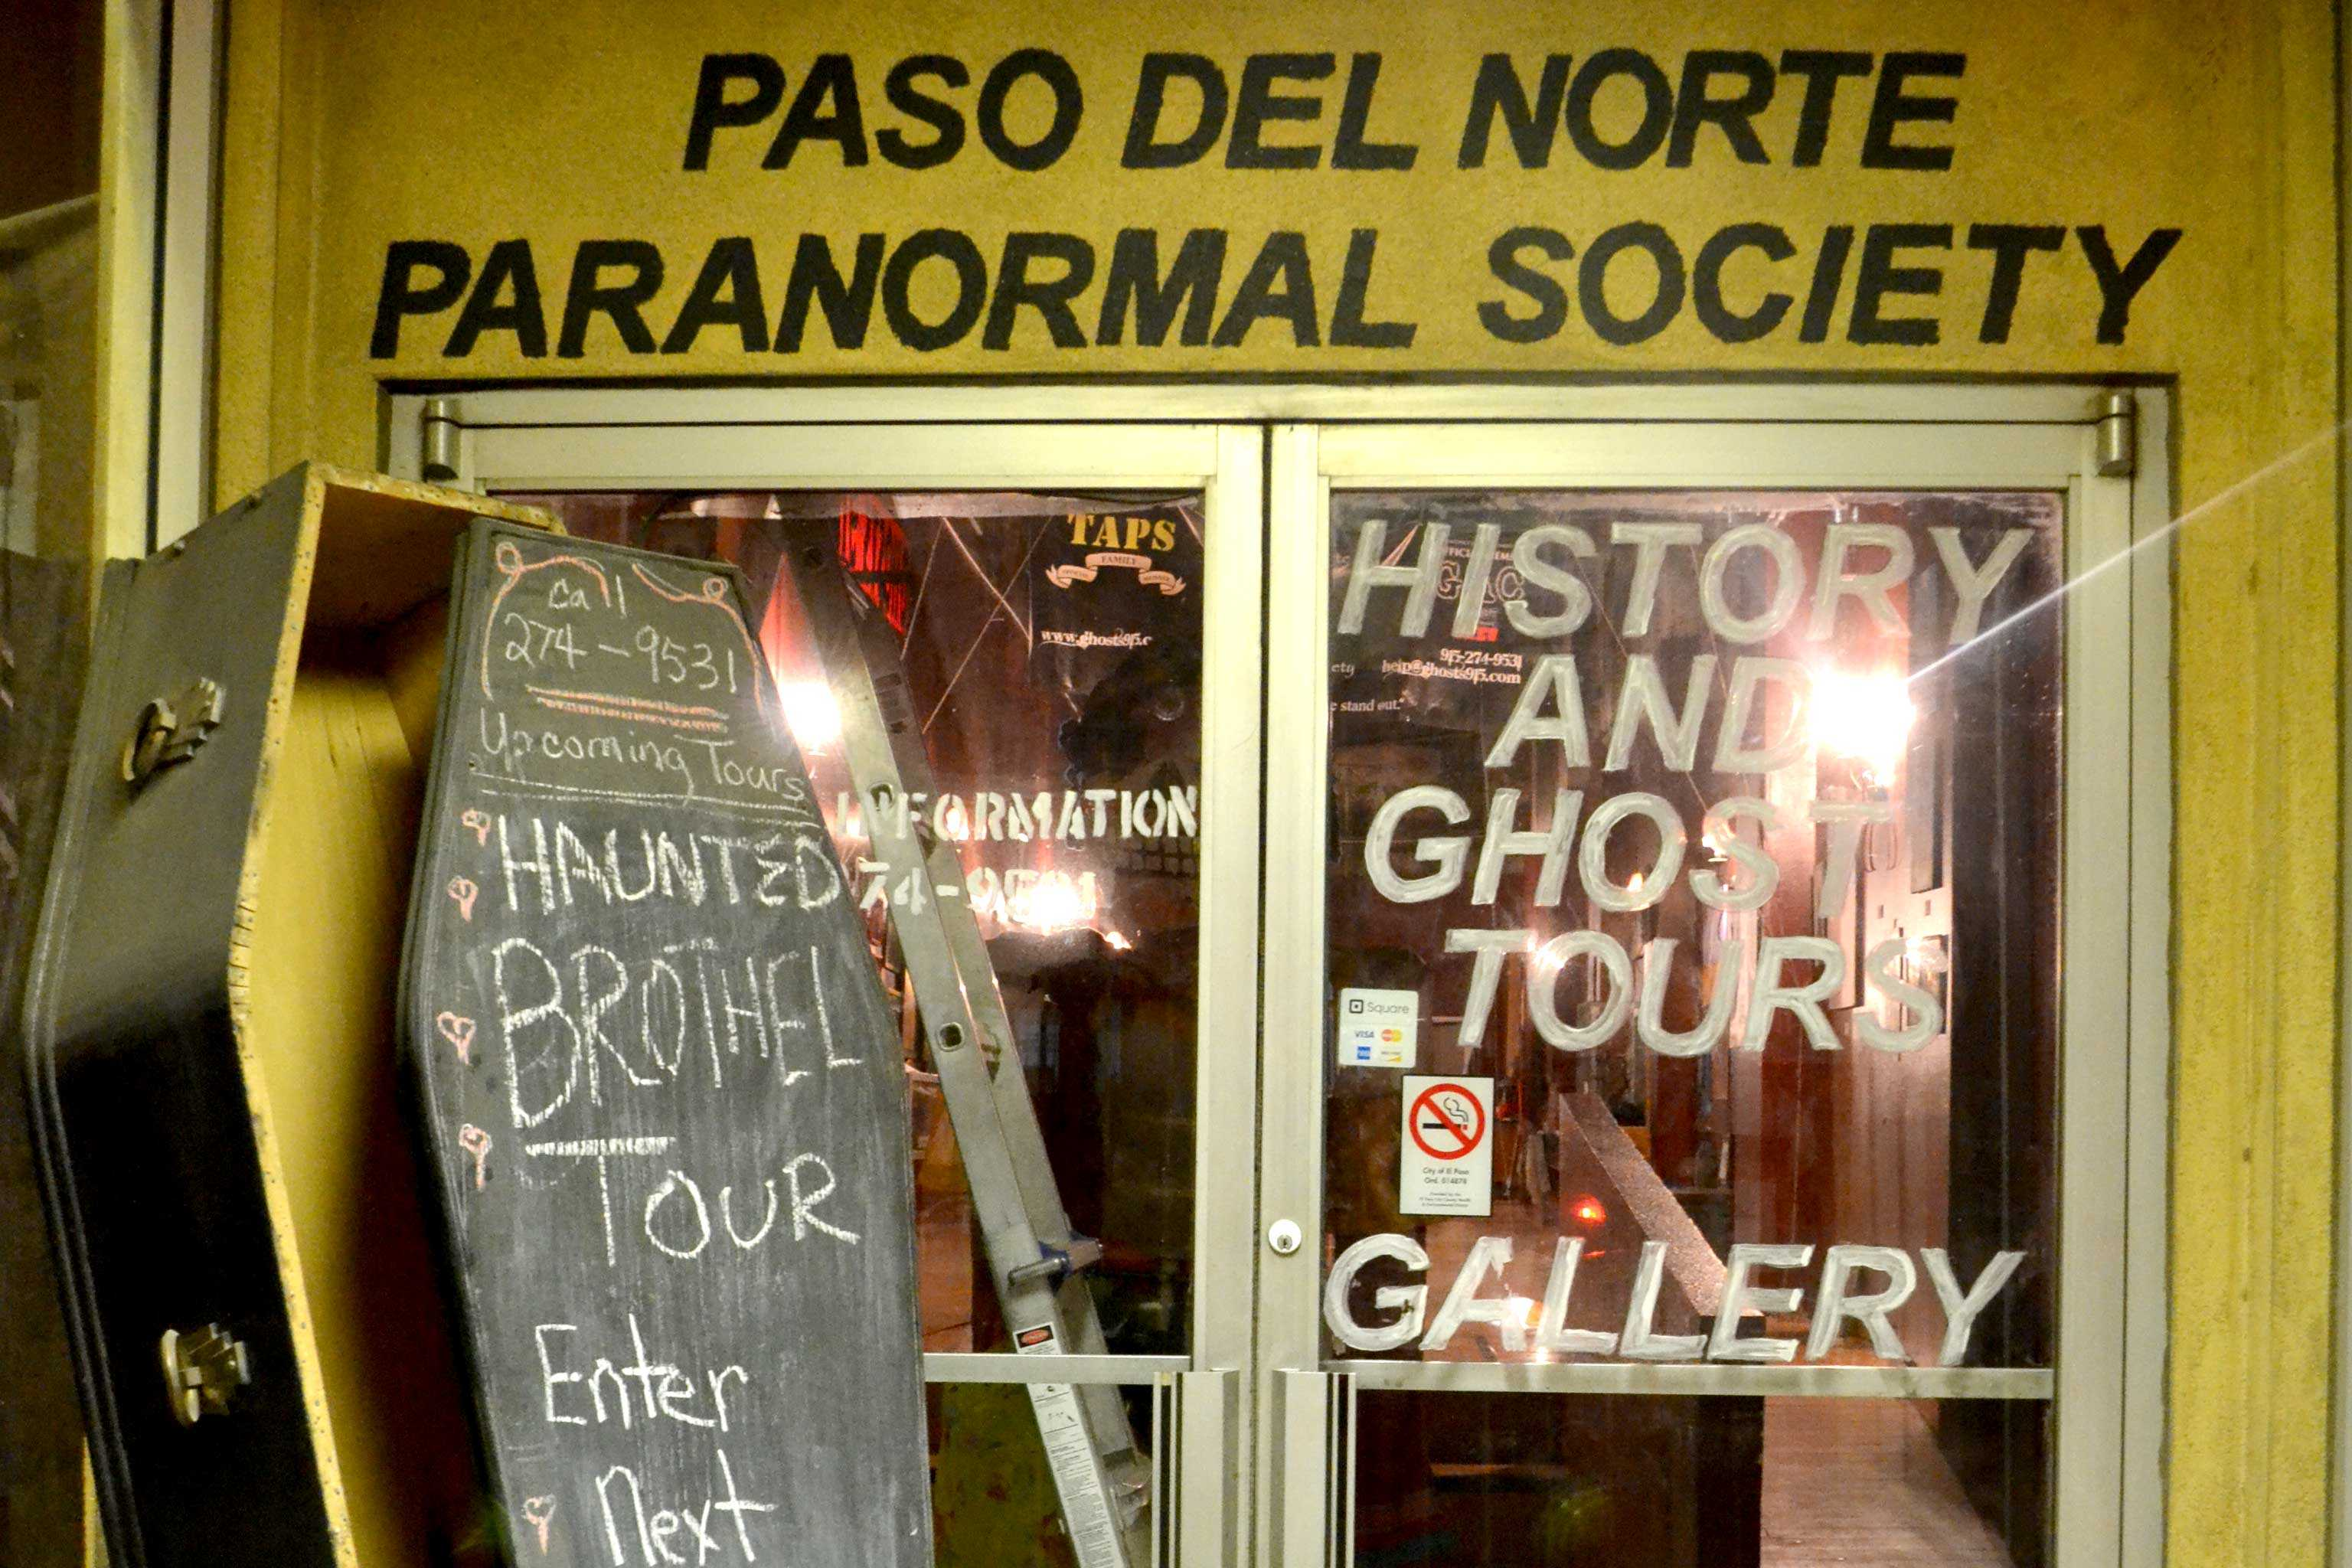 Located at 108 San Antonio Street, the Paso del Norte Paranormal Society specializes in researching and investigating paranormal activity in the El Paso area.